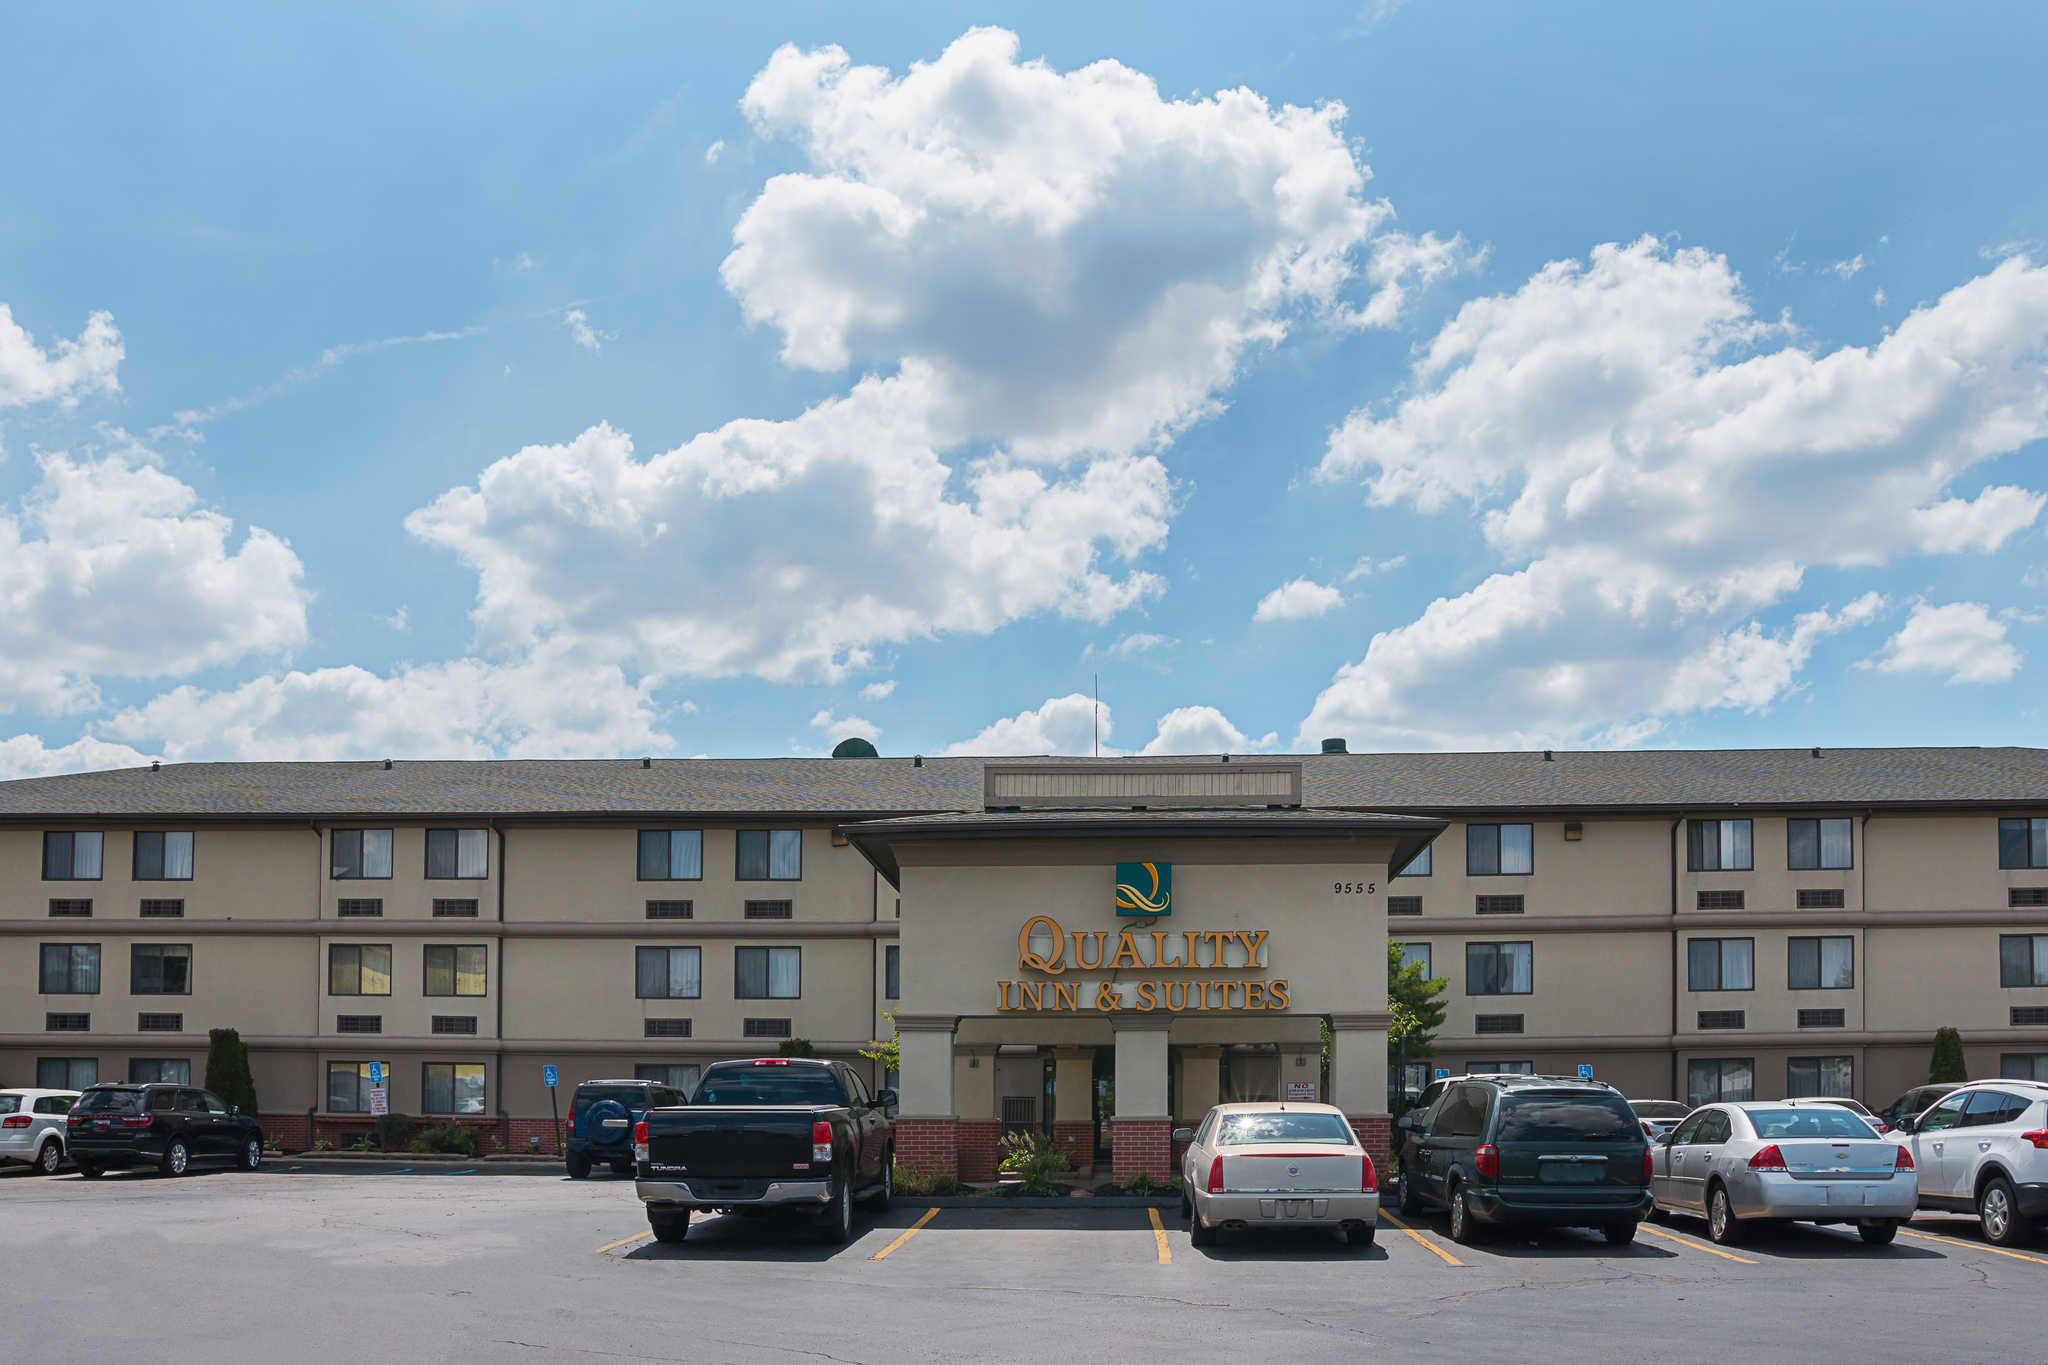 Find Quality Inn hotels in Detroit, MI. With great amenities and our Best Internet Rate Guarantee, book your hotel in Detroit today.